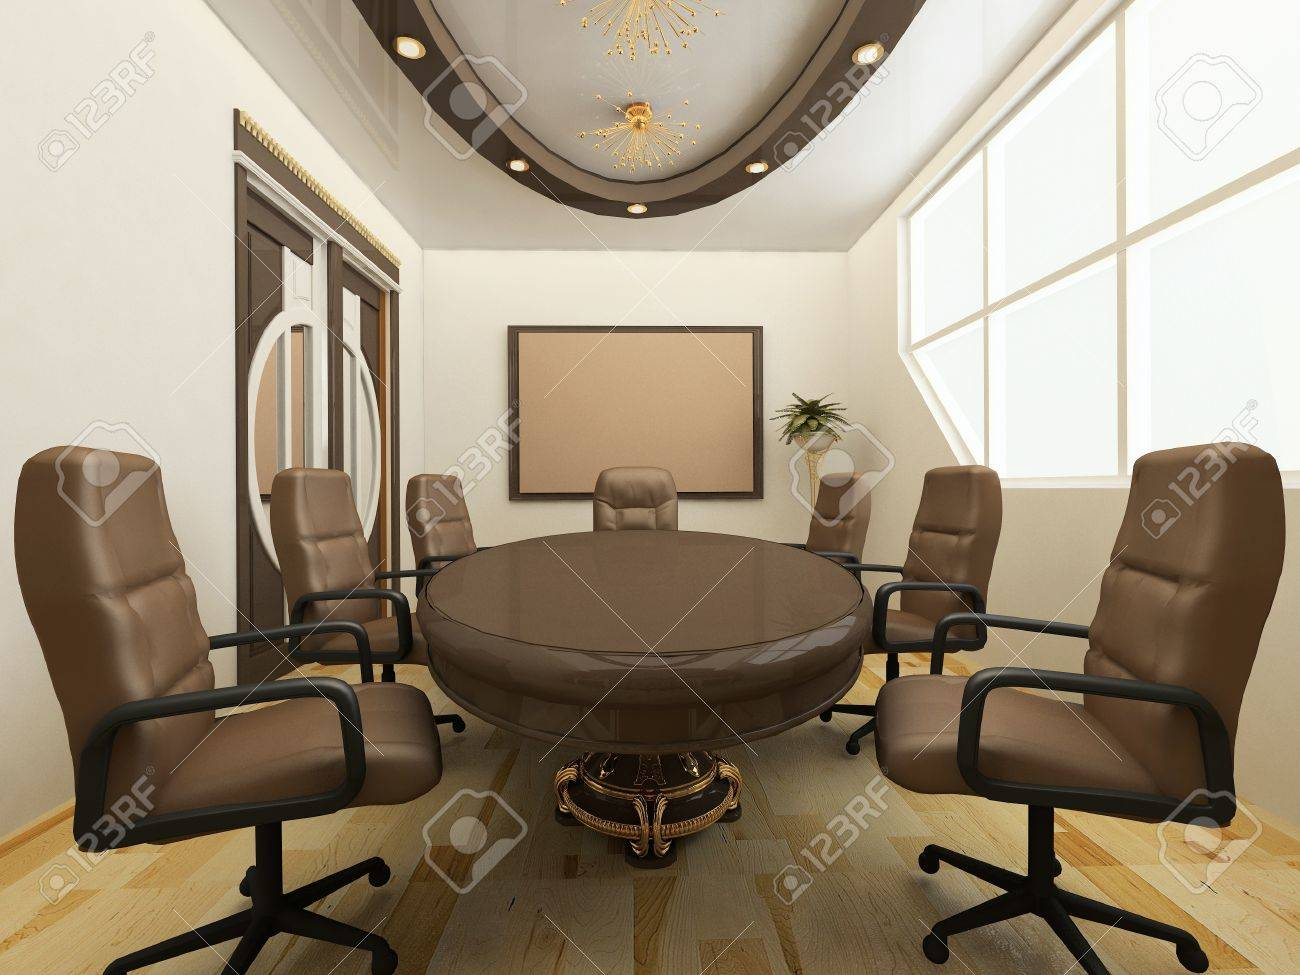 Desk with chairs in office interior. Workplace Stock Photo - 10468577